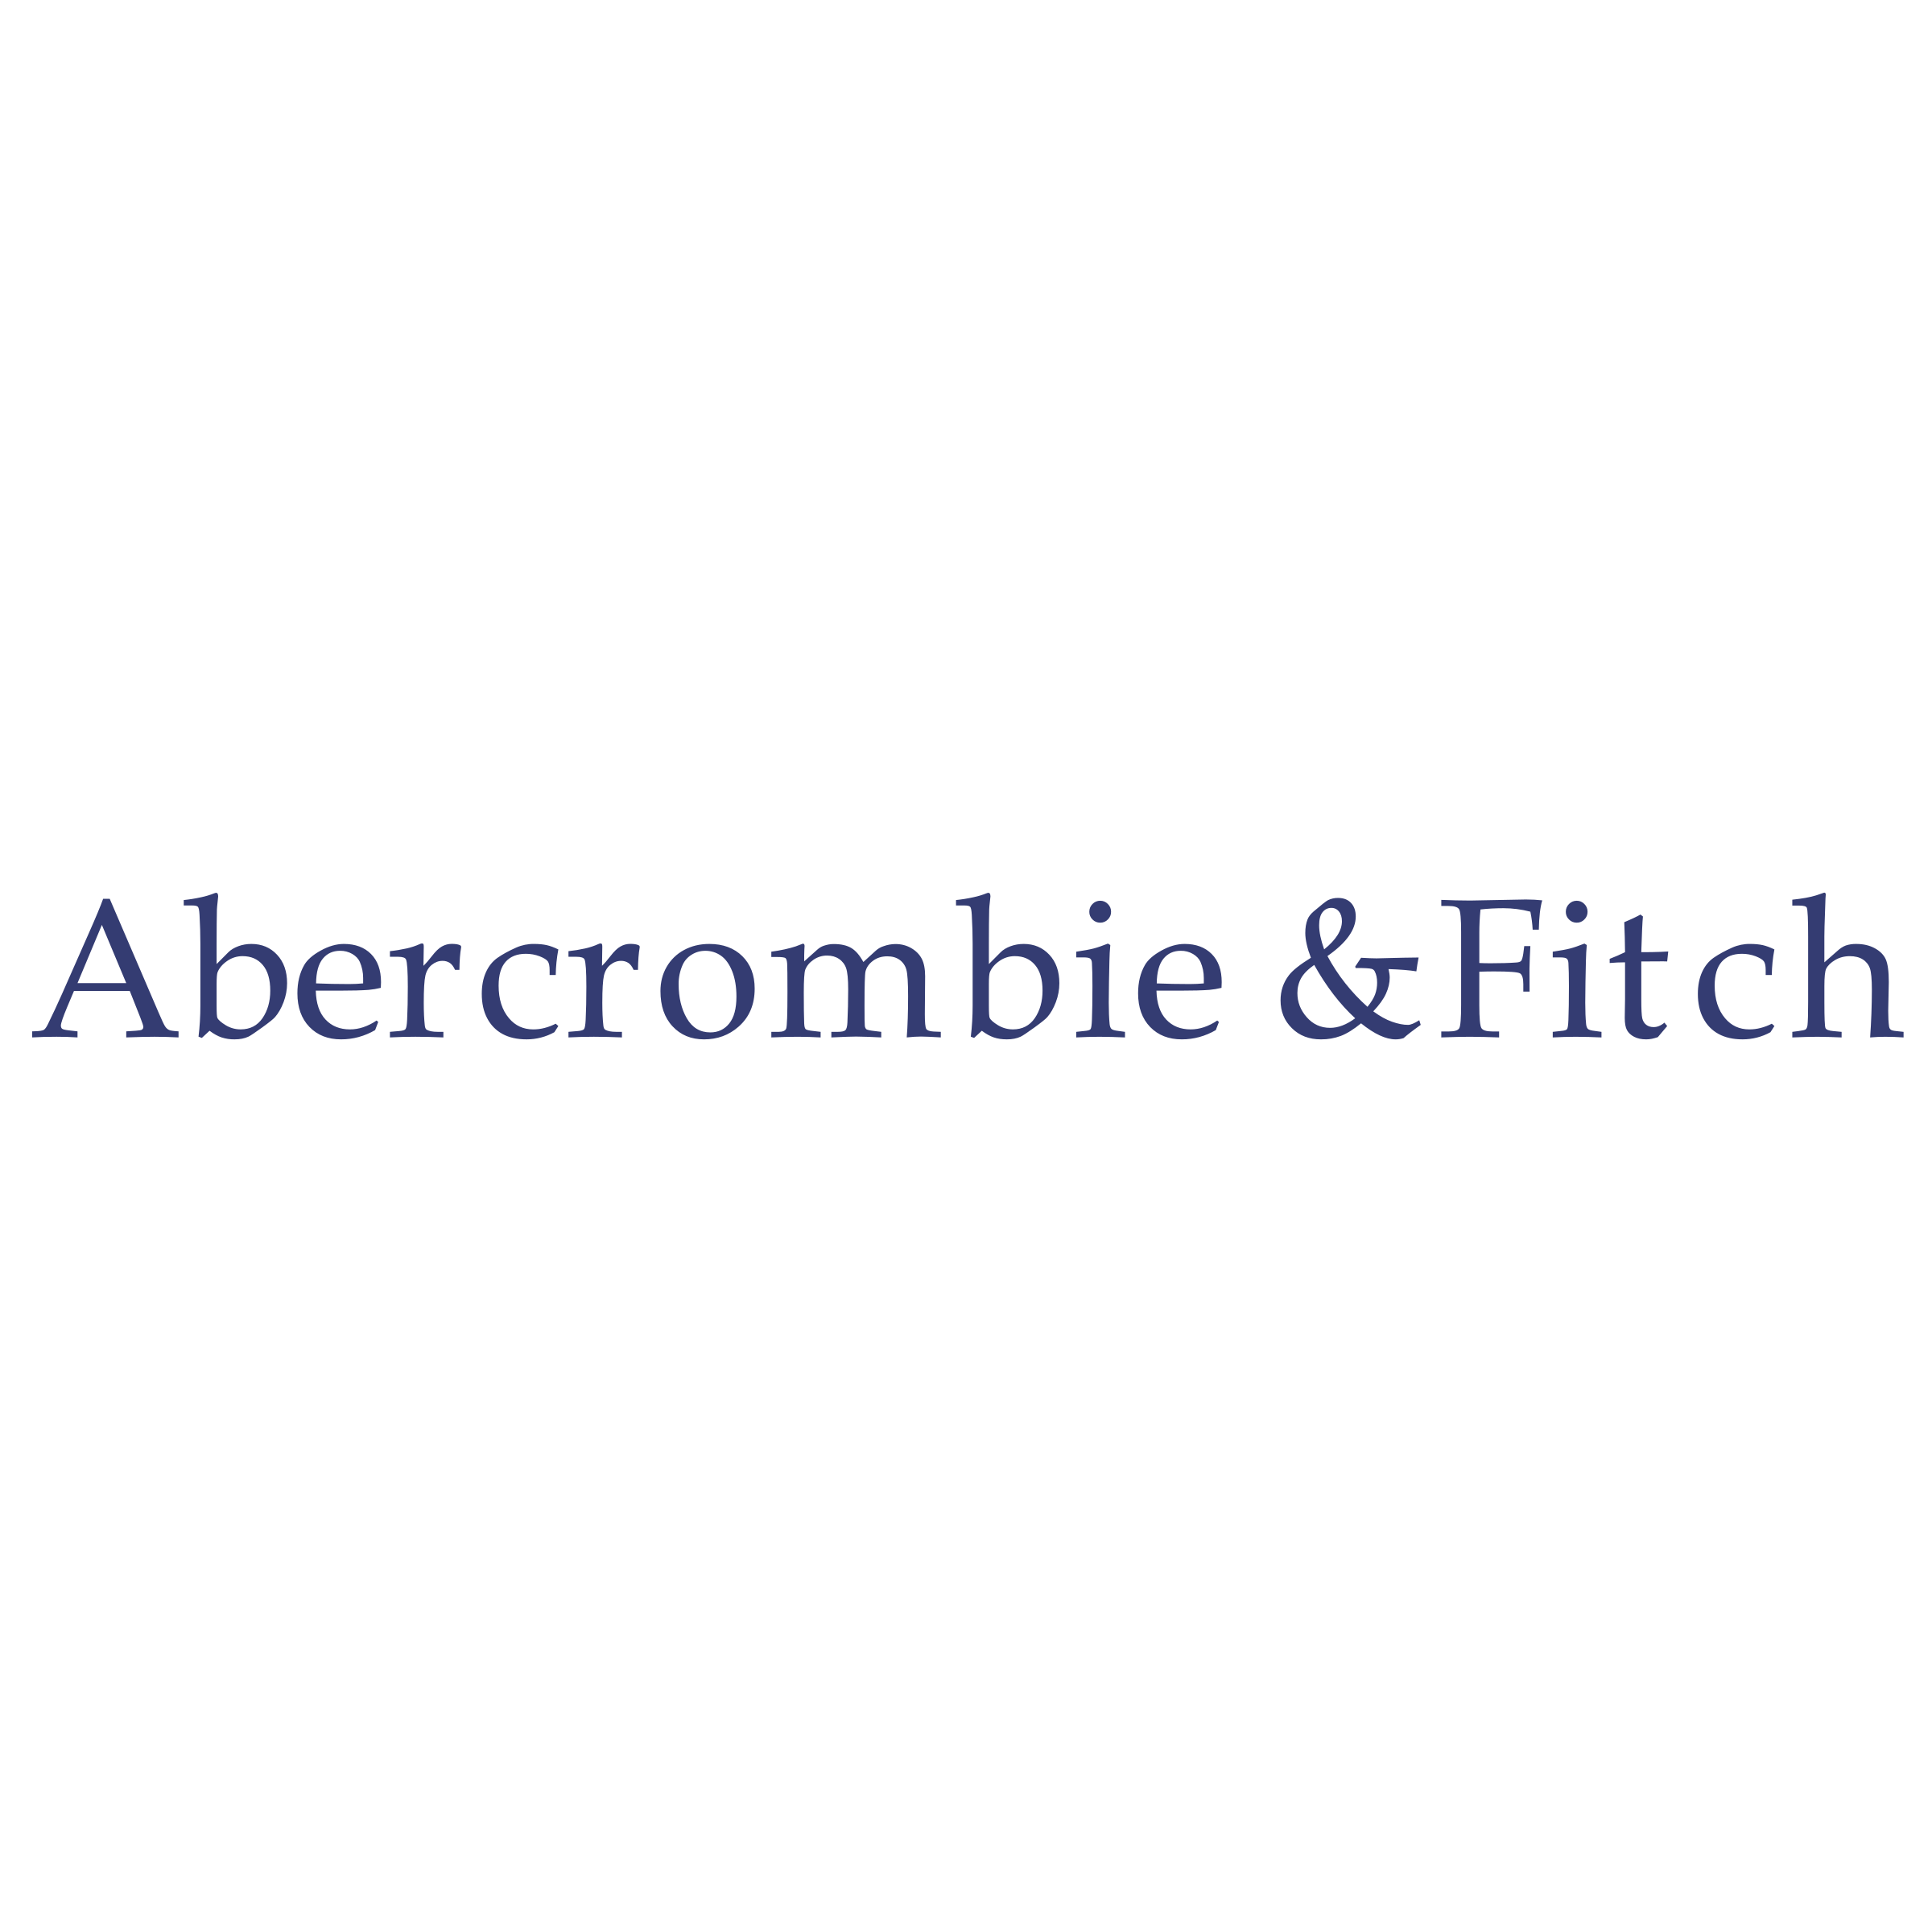 Abercrombie & Fitch Logo PNG Transparent & SVG Vector.